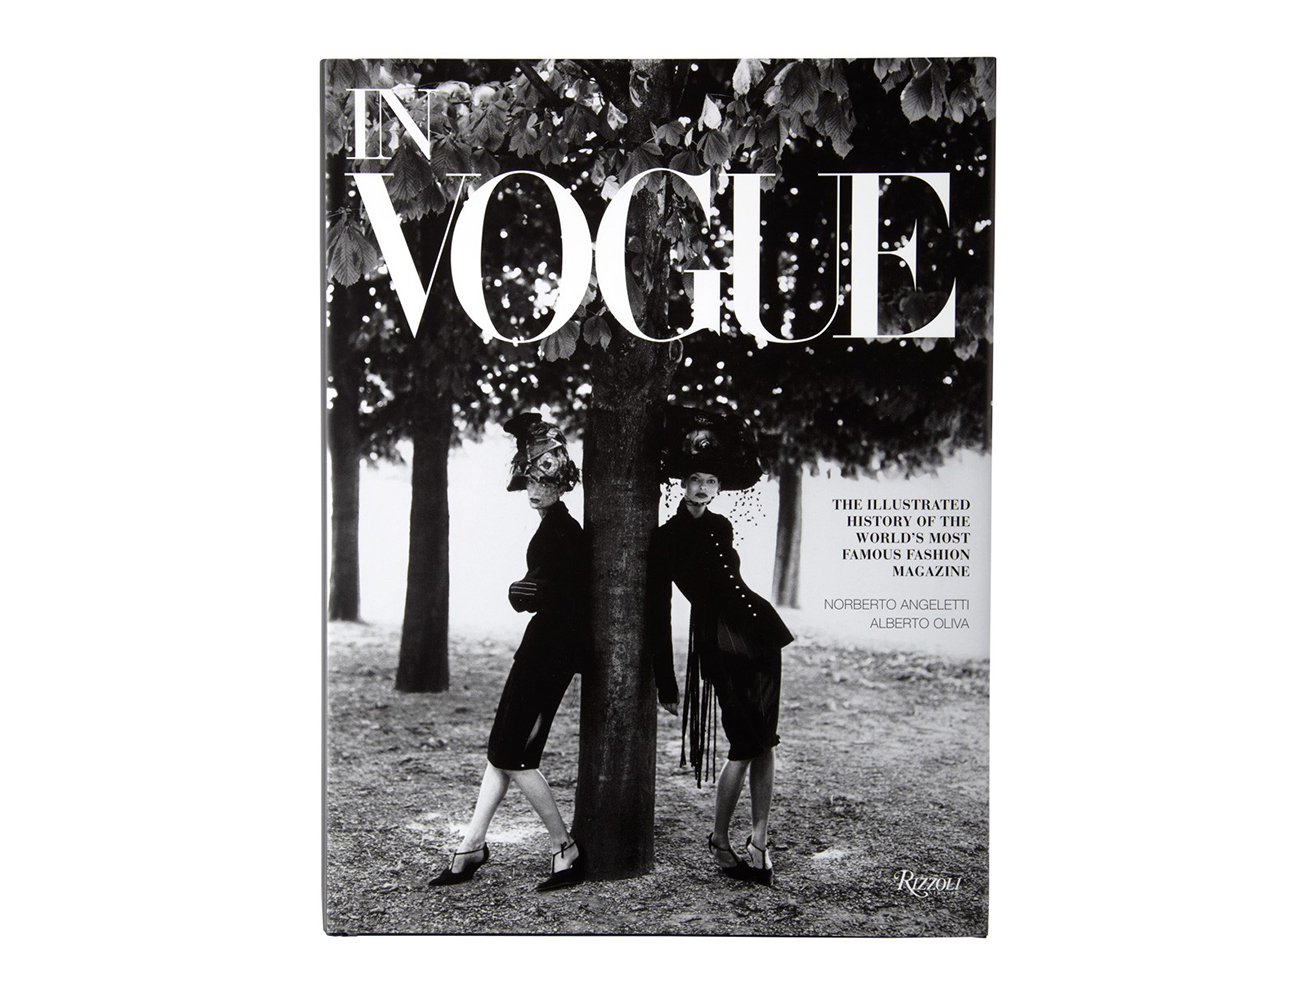 Top 10 Fashion Magazines - Elle, Harper s BAZAAR, Vogue, Marie